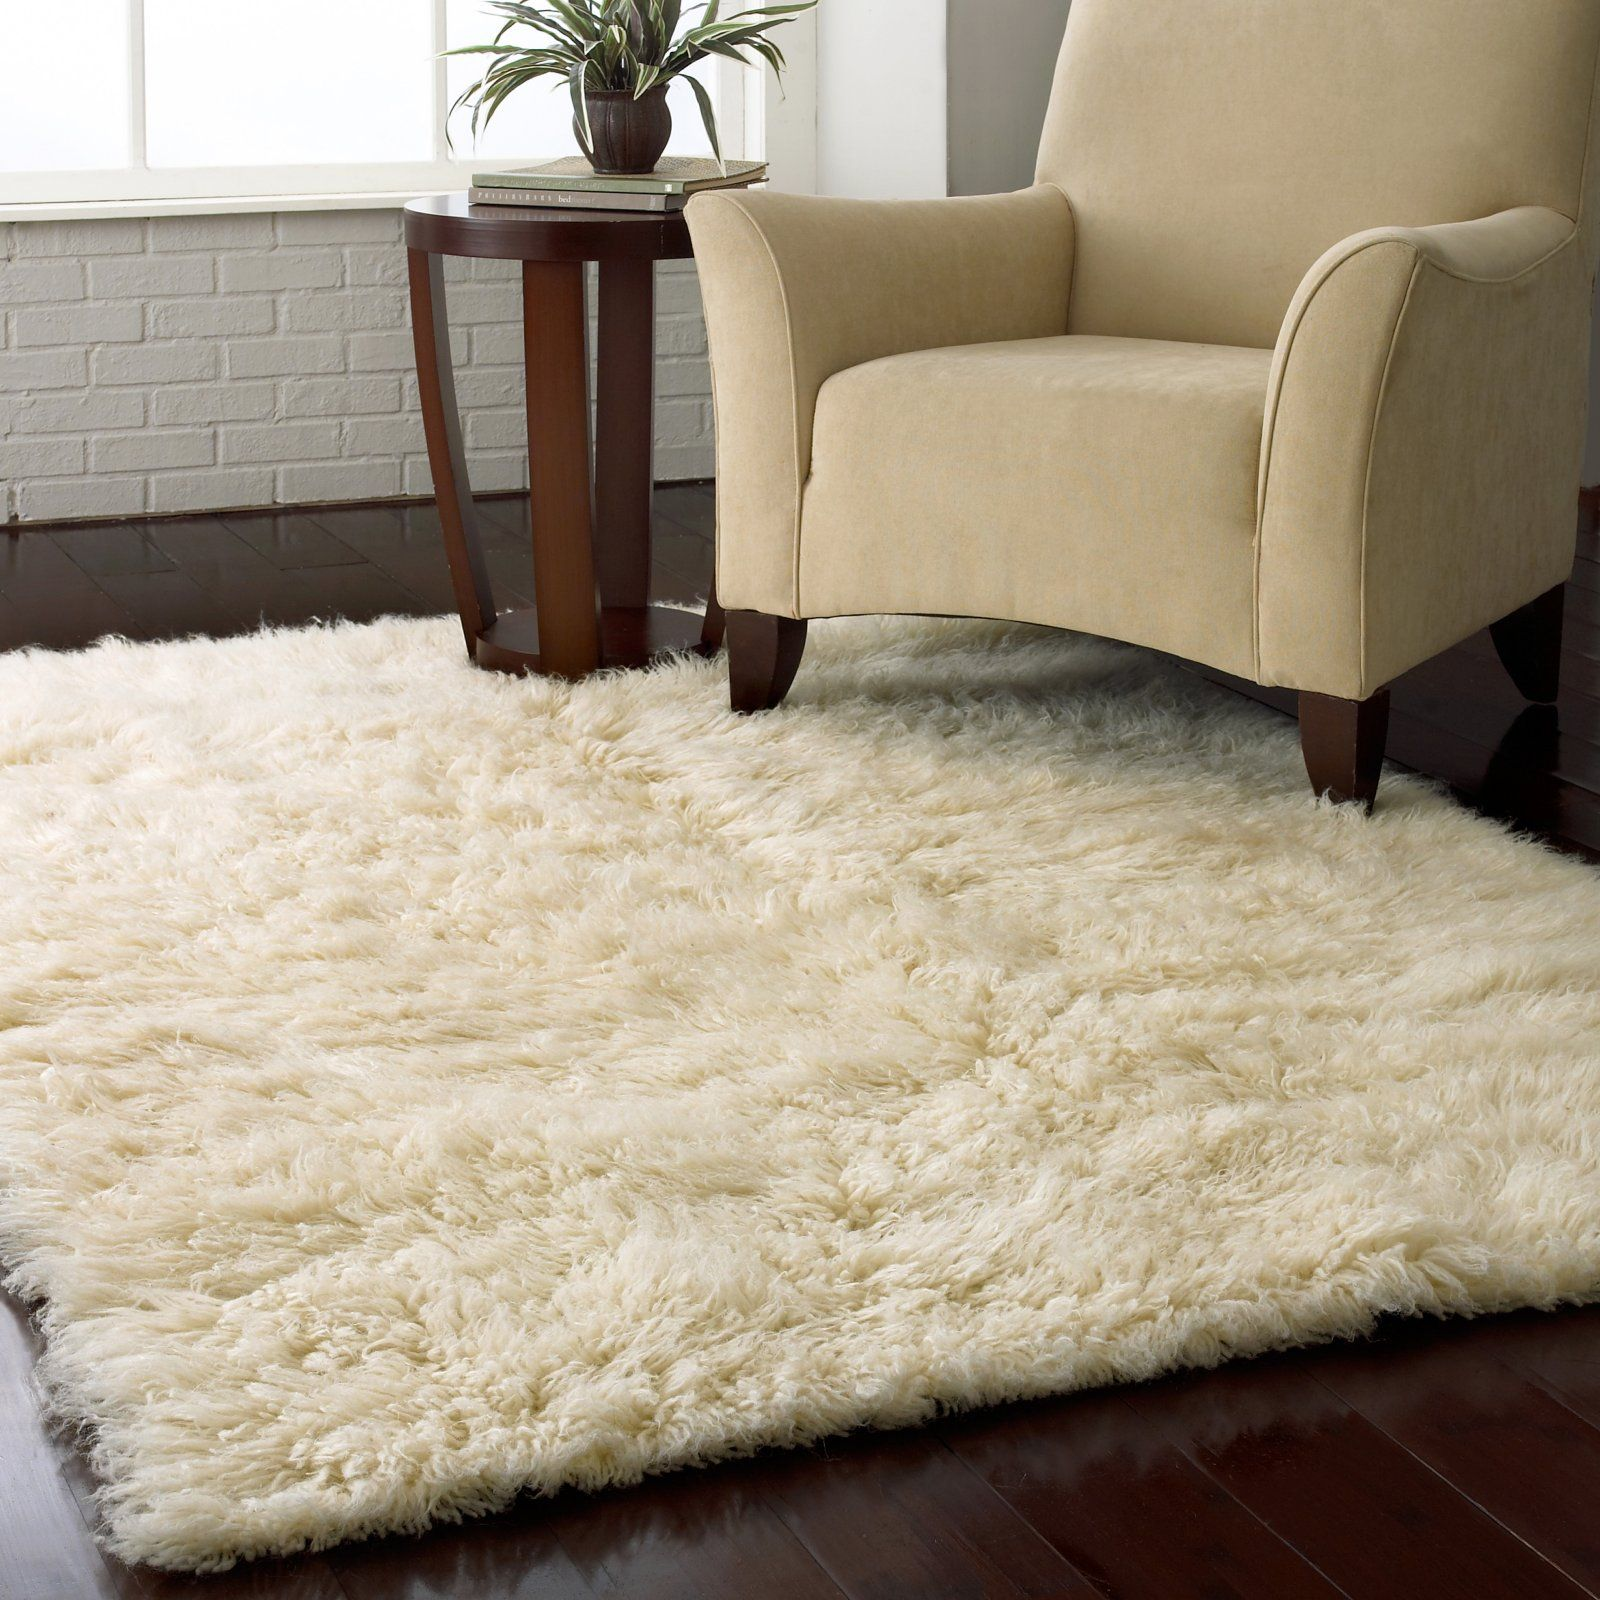 flokati shag rug - natural | front room brainstorming | pinterest